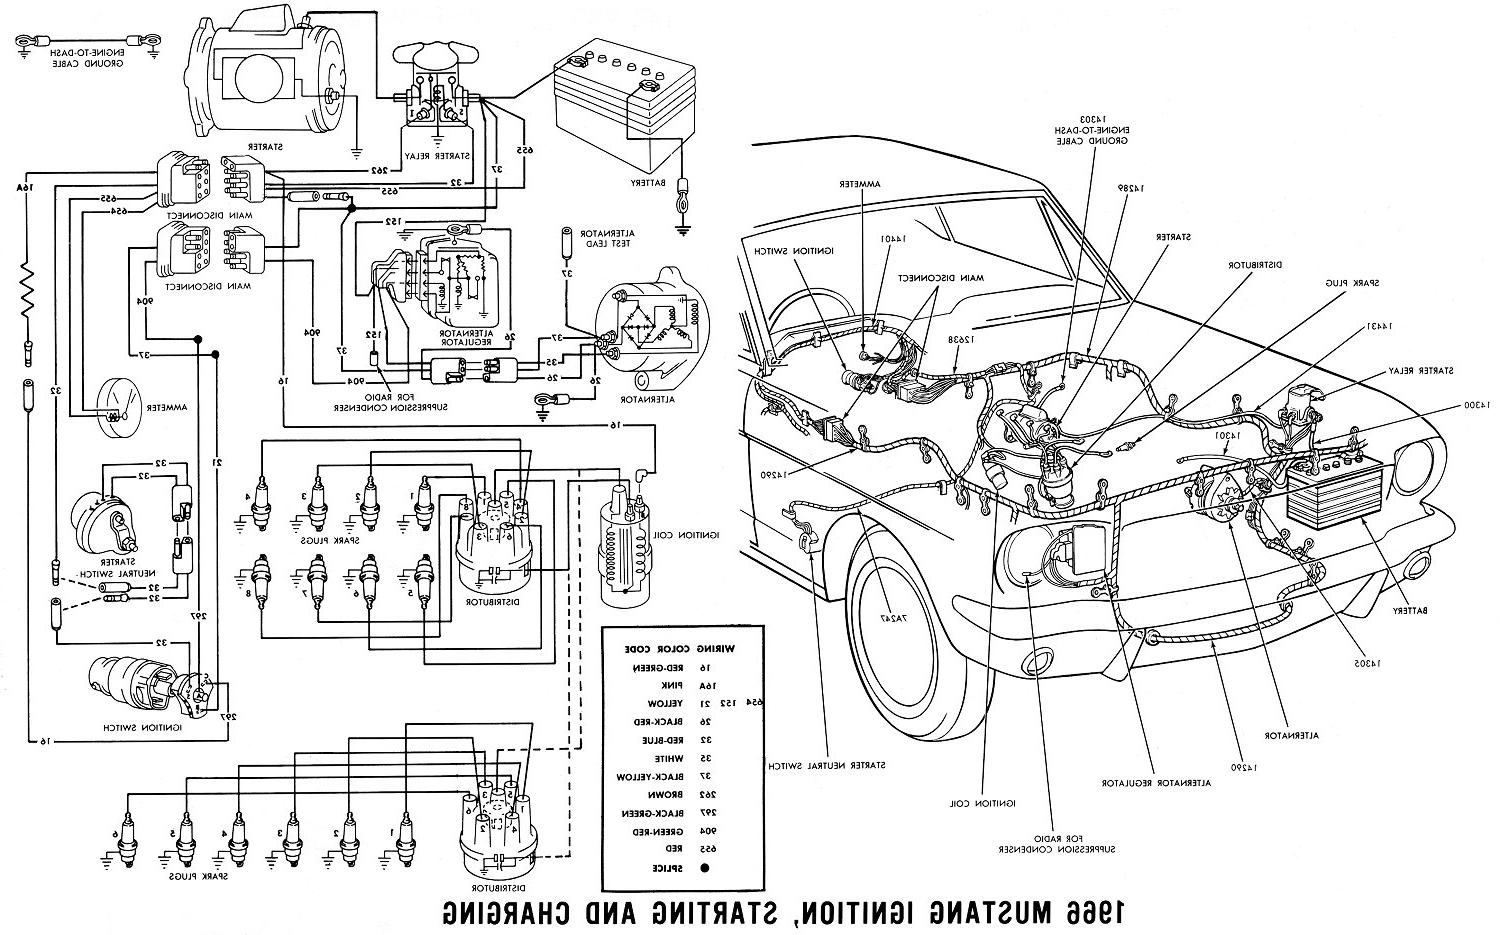 hight resolution of 1950 dodge coronet wiring harness all kind of wiring diagrams u2022 1966 chrysler 440 wiring